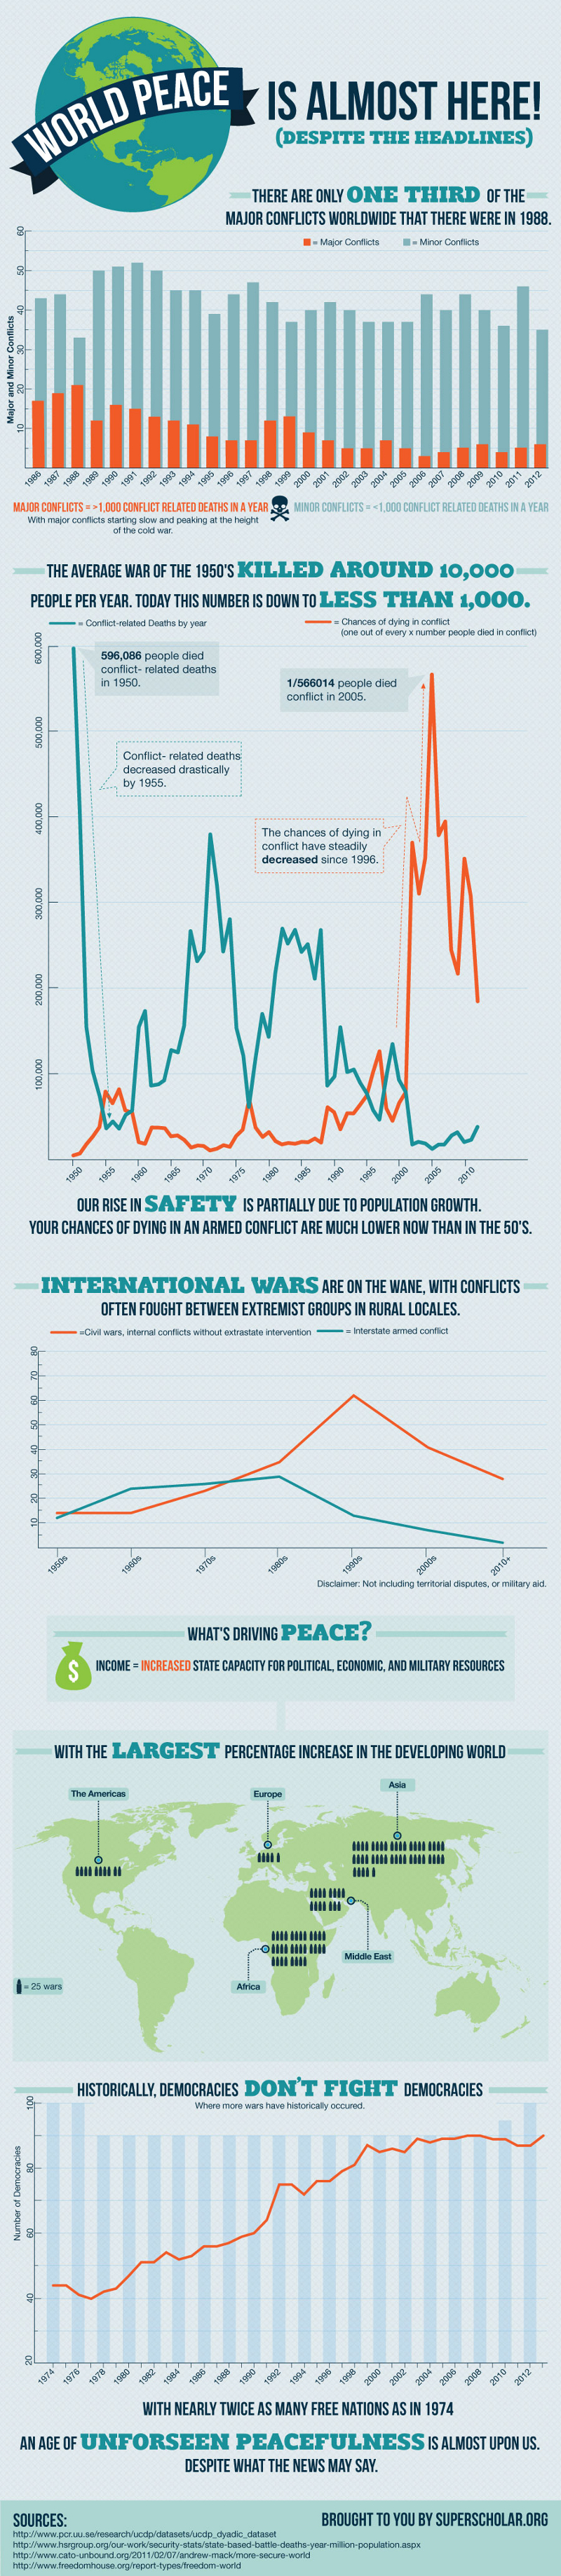 World Peace and Conflict Stats